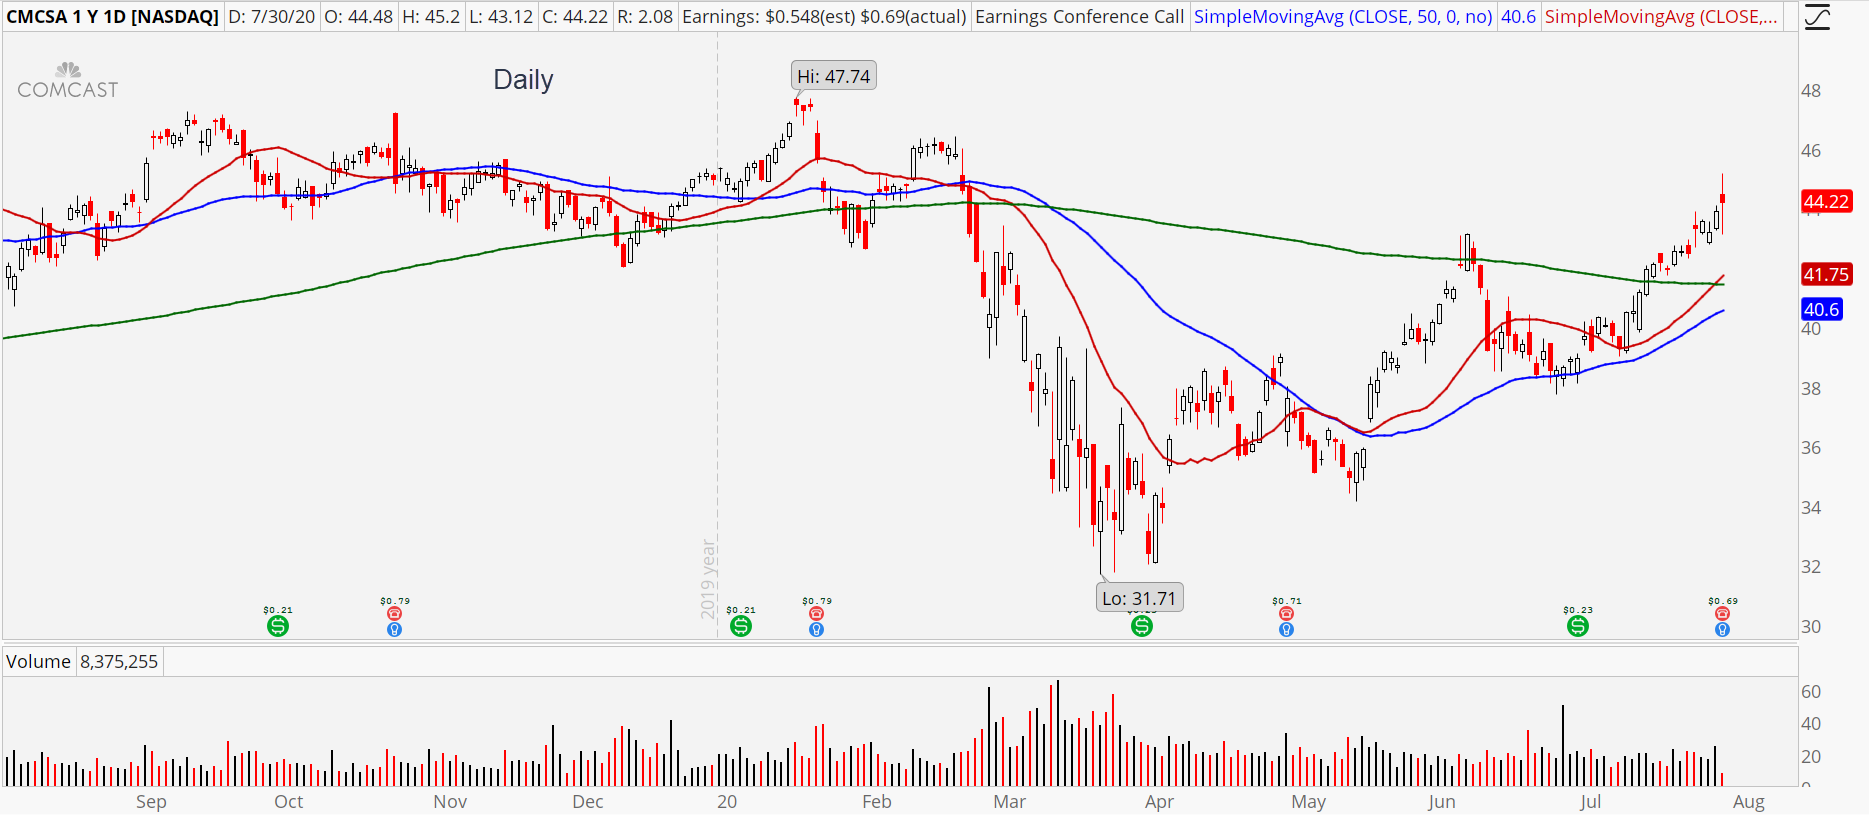 Comcast (CMCSA) daily chart showing earnings reaction